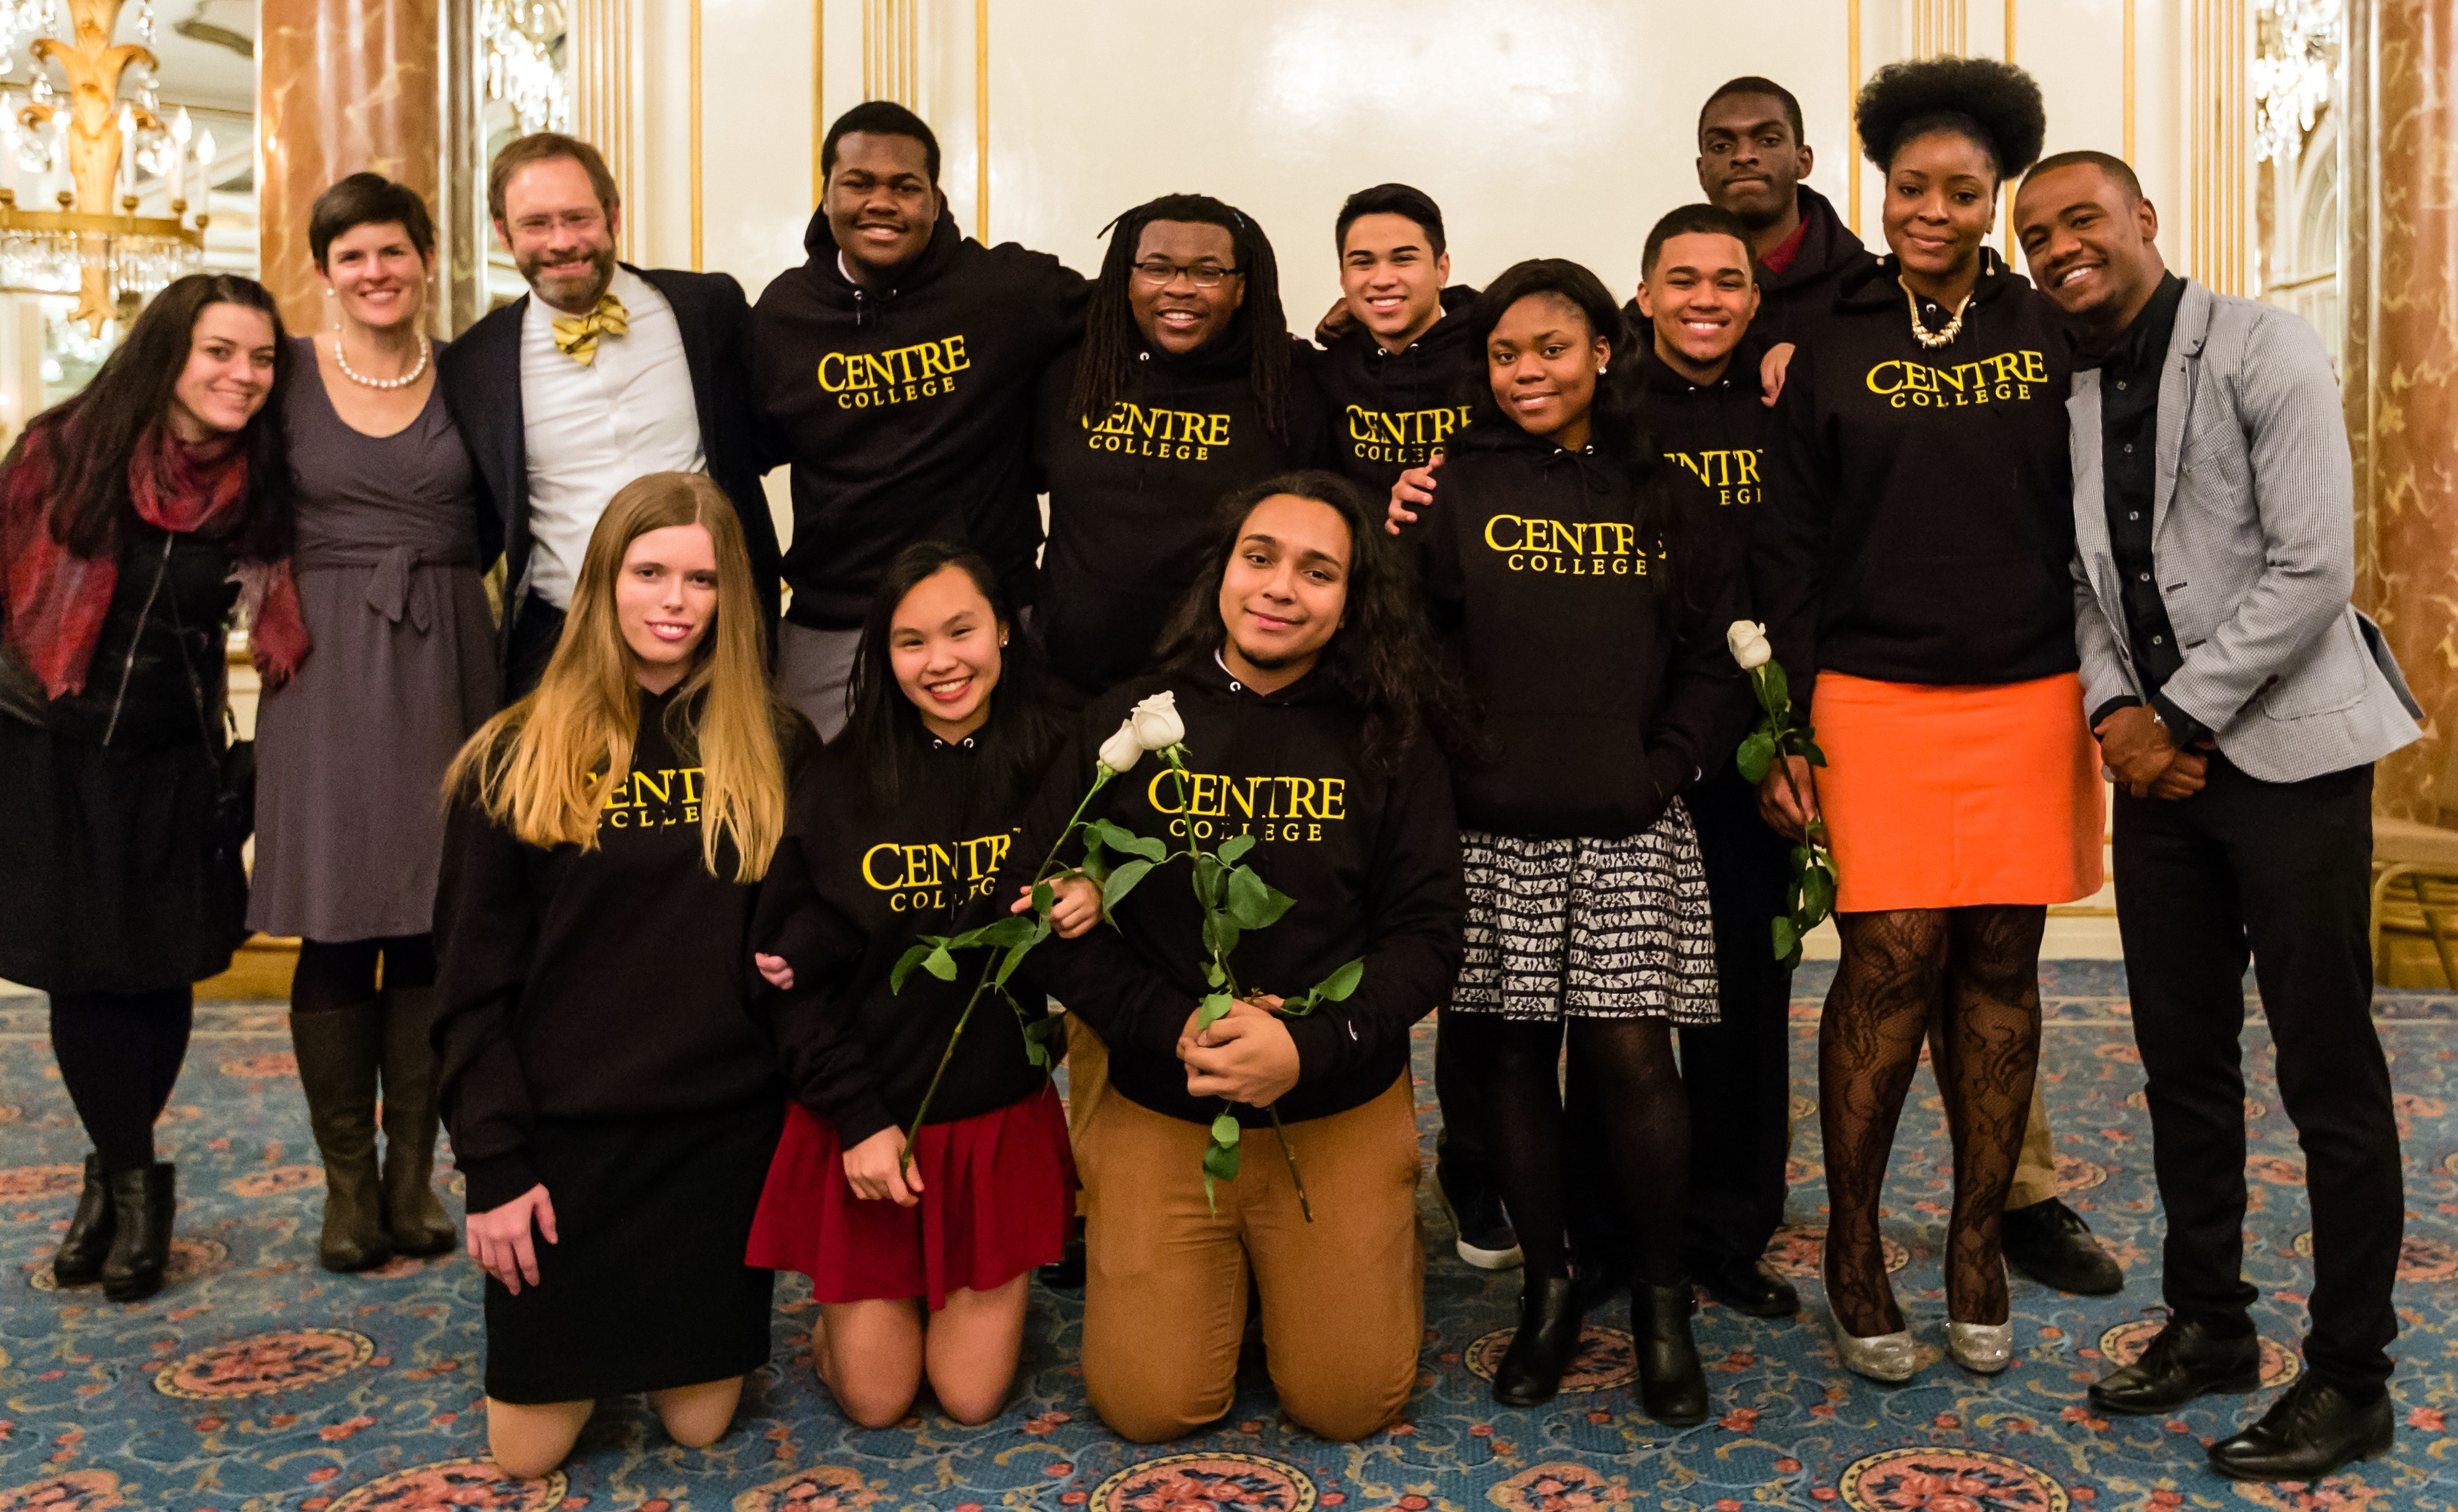 Bob Nesmith (back row, third from left) with new Posse Scholars and Centre community members in 2016.